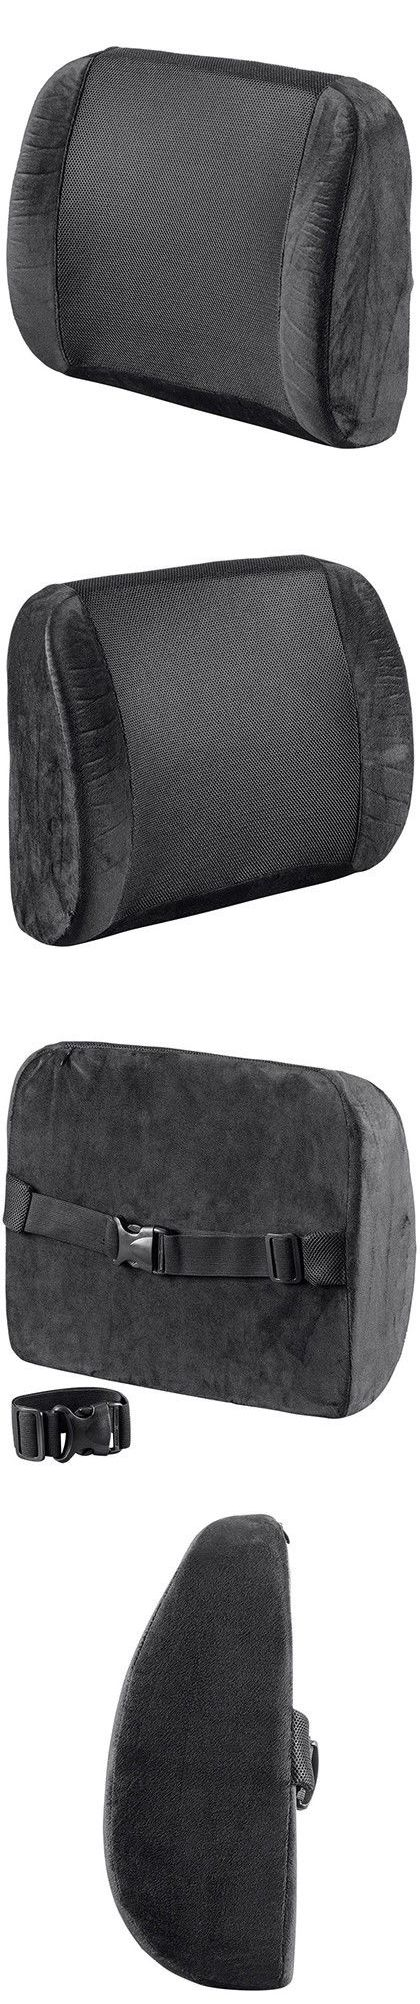 Seat and posture cushions lumbar cushion back support travel pillow memory foam car seat home